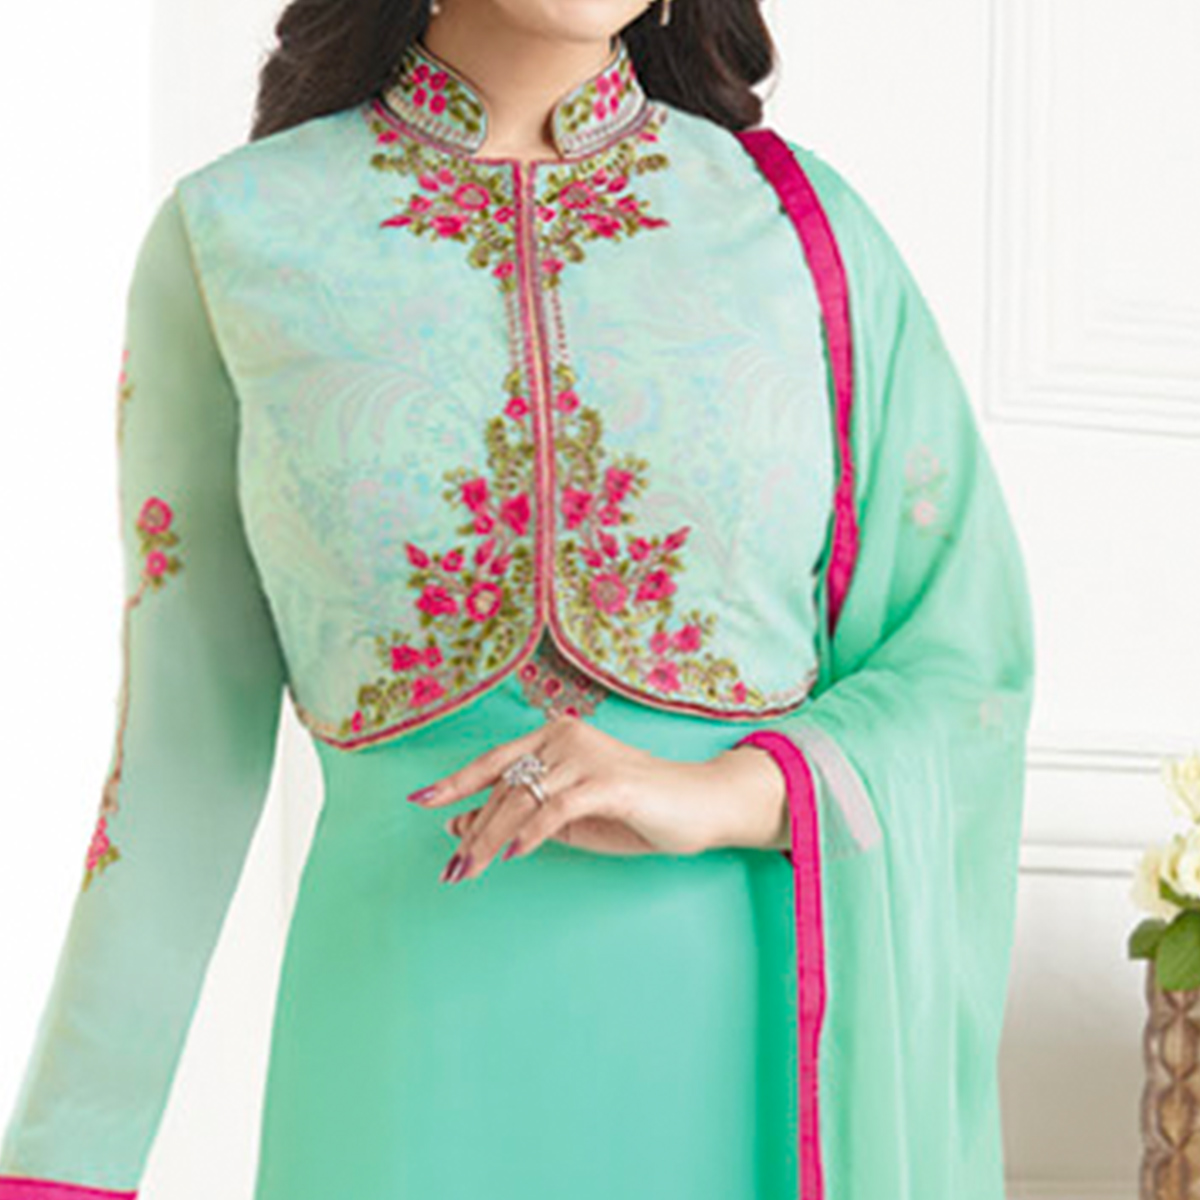 Engrossing Turquoise Green Colored Party Wear Embroidered Pure Georgette Suit